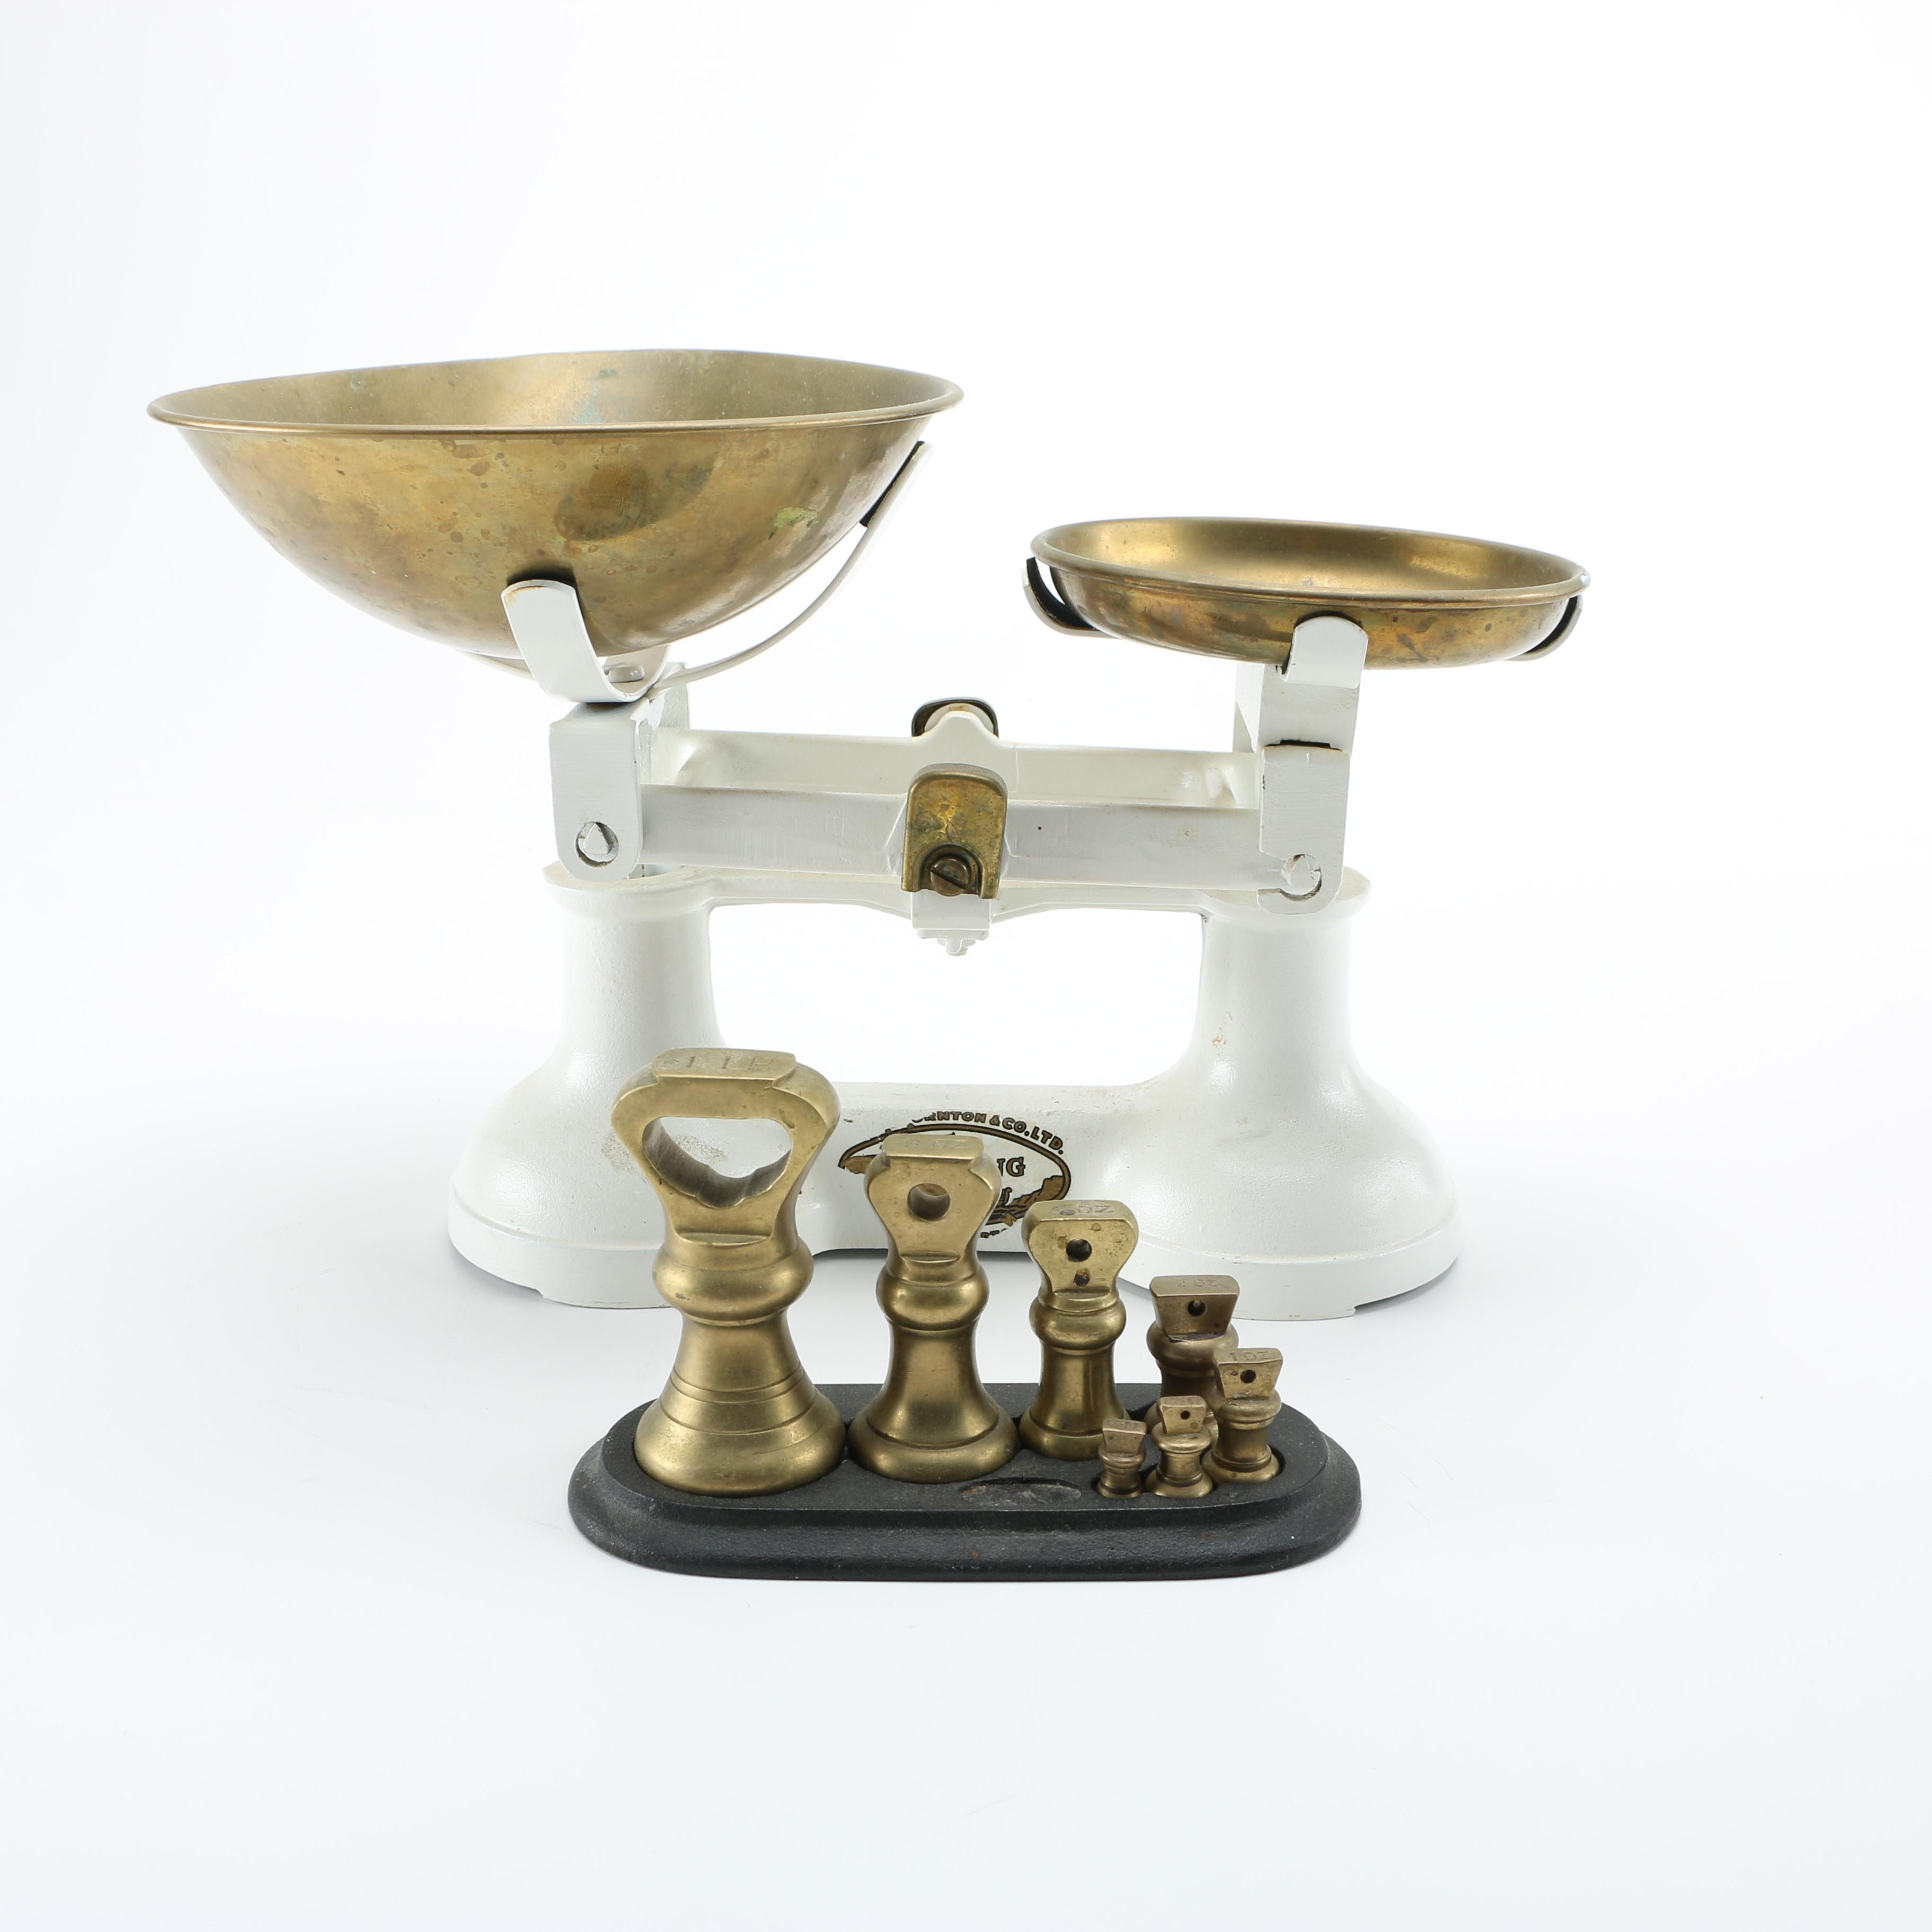 Vintage F.J. Thornton Wolverhampton Scale With Weights